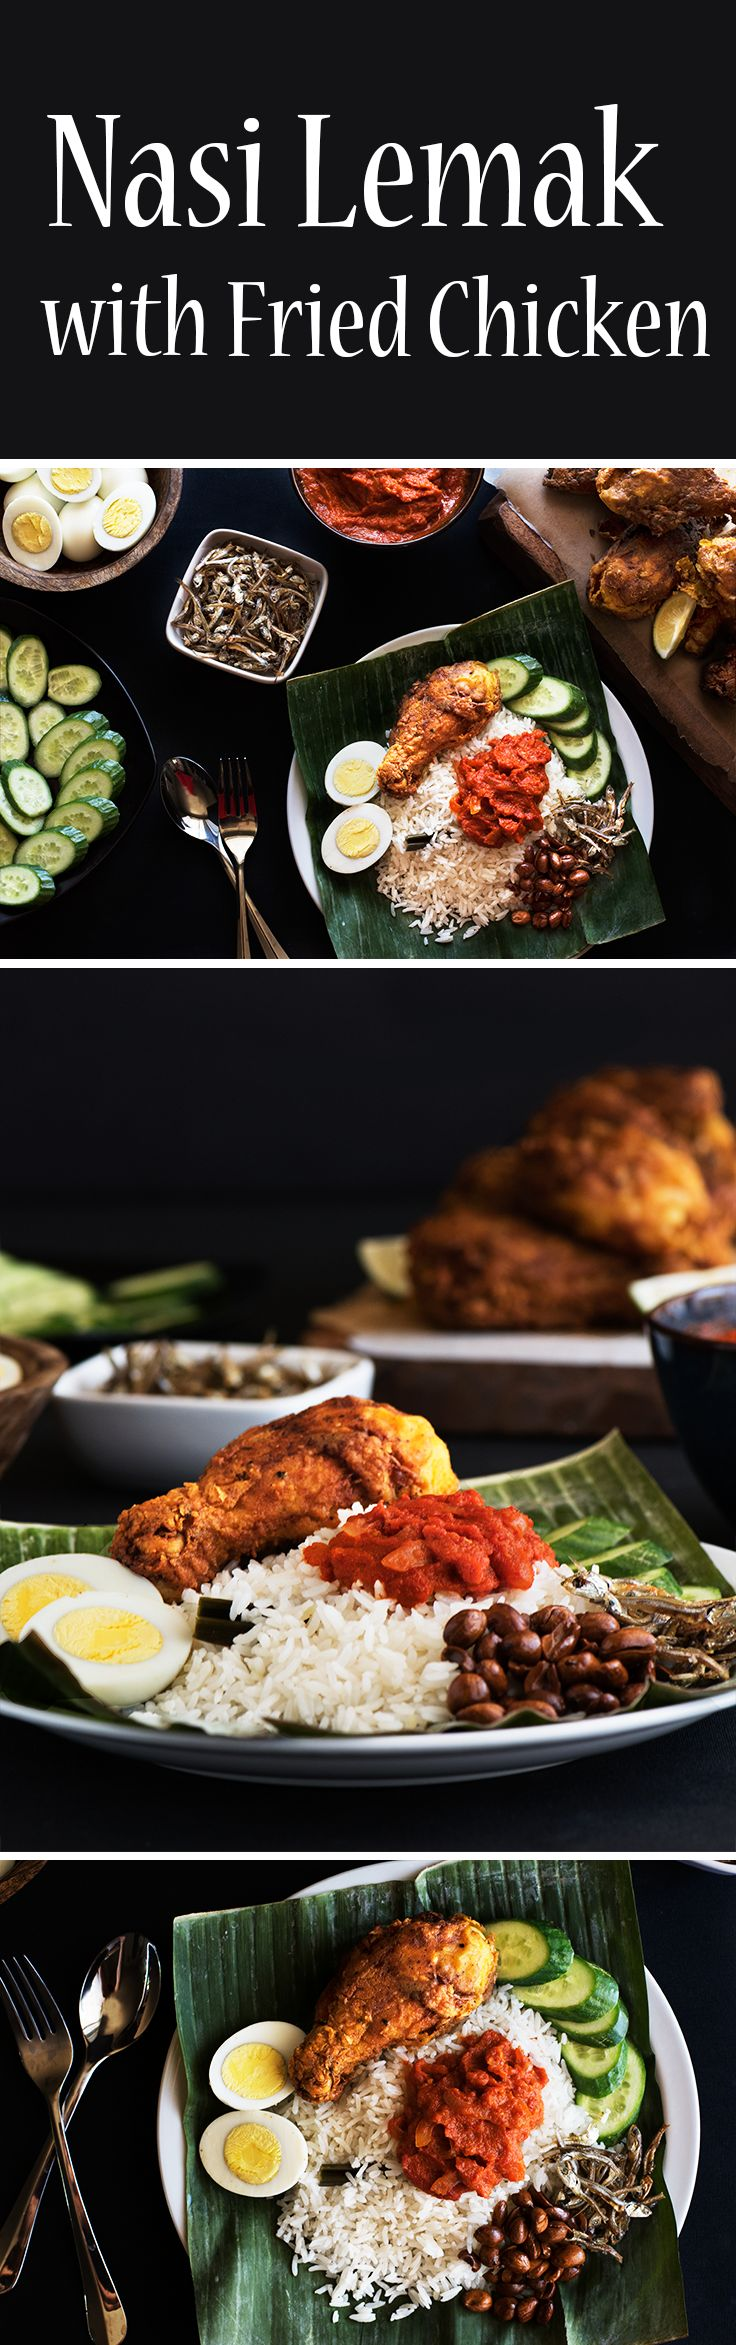 Fragrant coconut rice with sambal (a spicy sauce), eggs, cucumber, crispy anchovies & peanuts and a special crispy curried fried chicken.